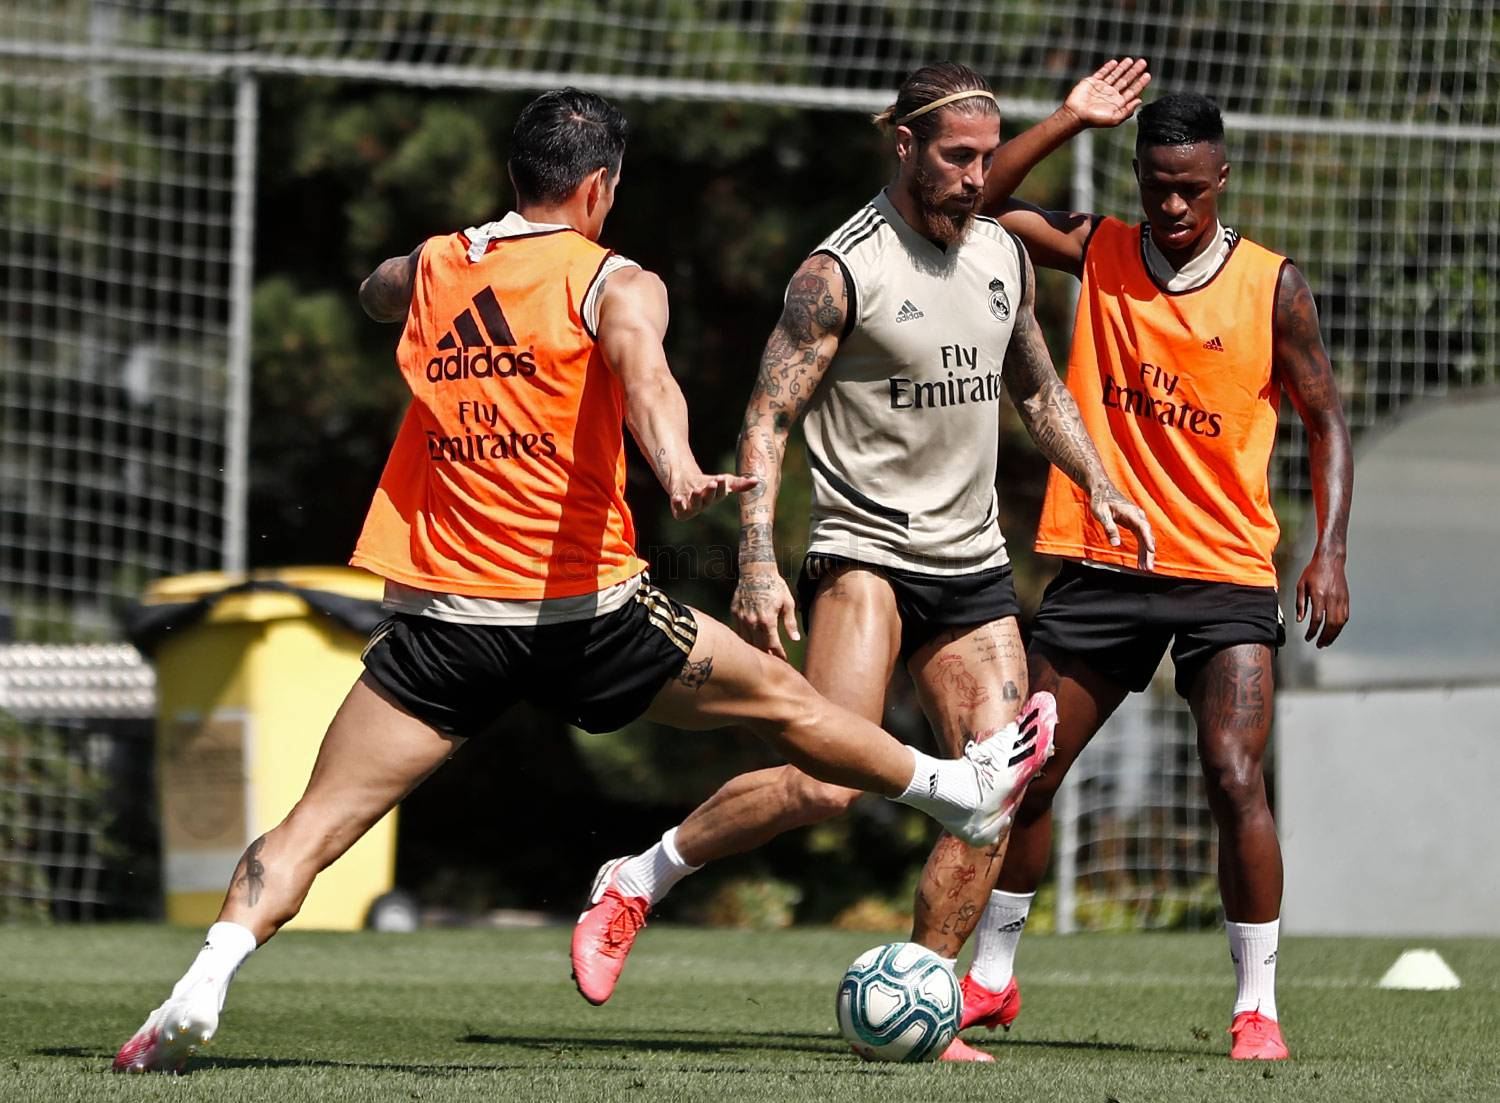 Real Madrid - Entrenamiento del Real Madrid  - 11-07-2020